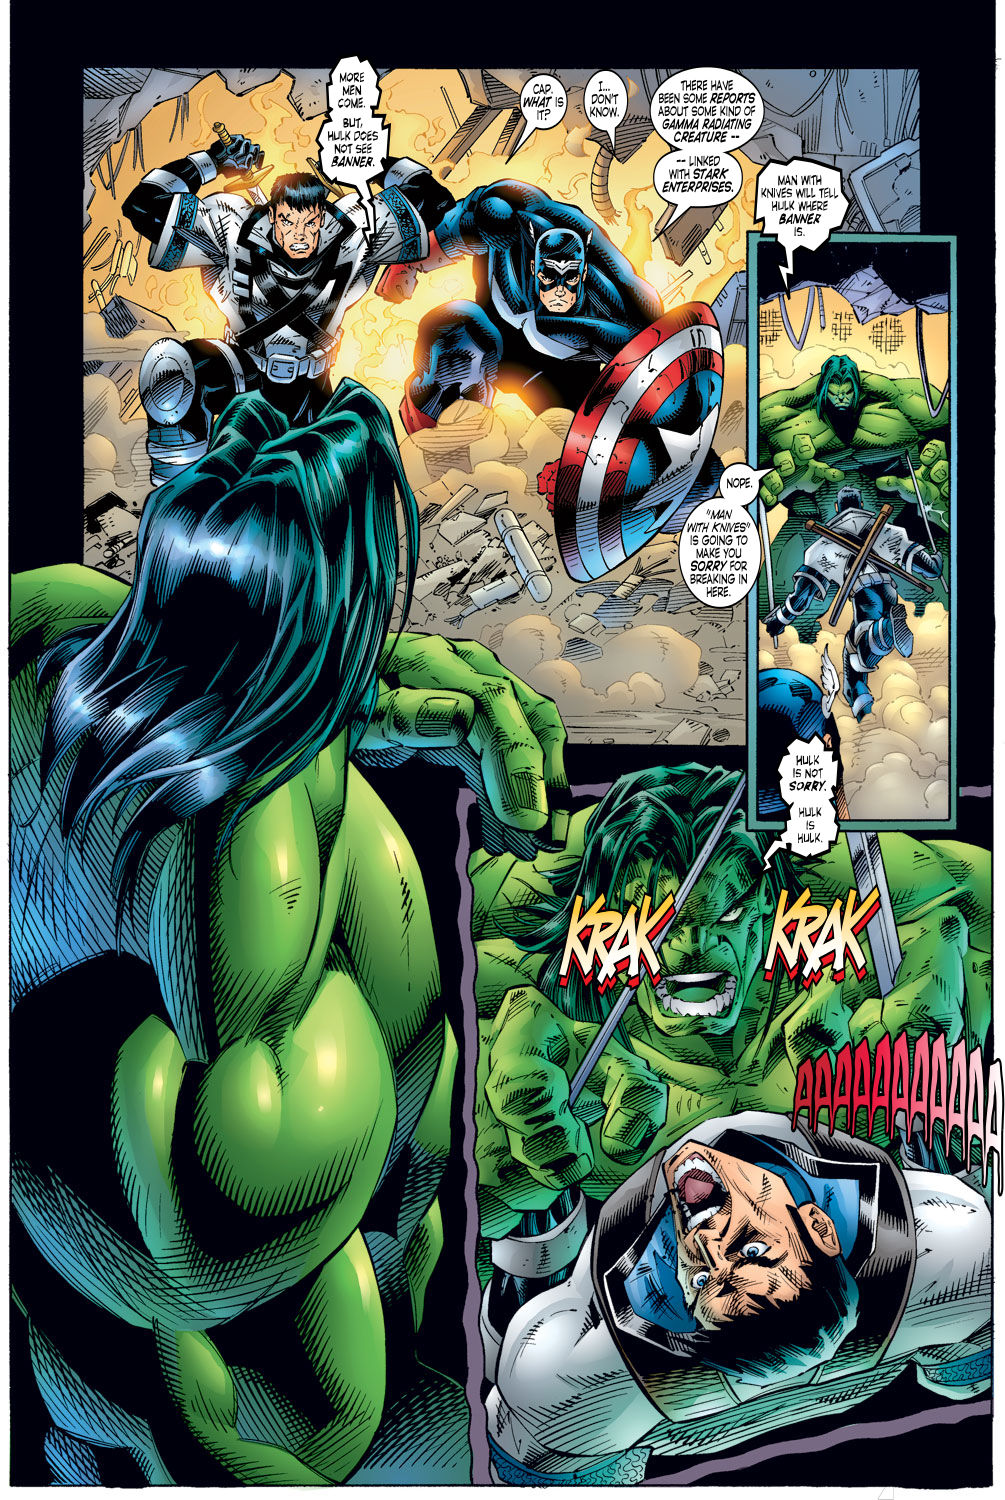 Read online Avengers (1996) comic -  Issue #4 - 19